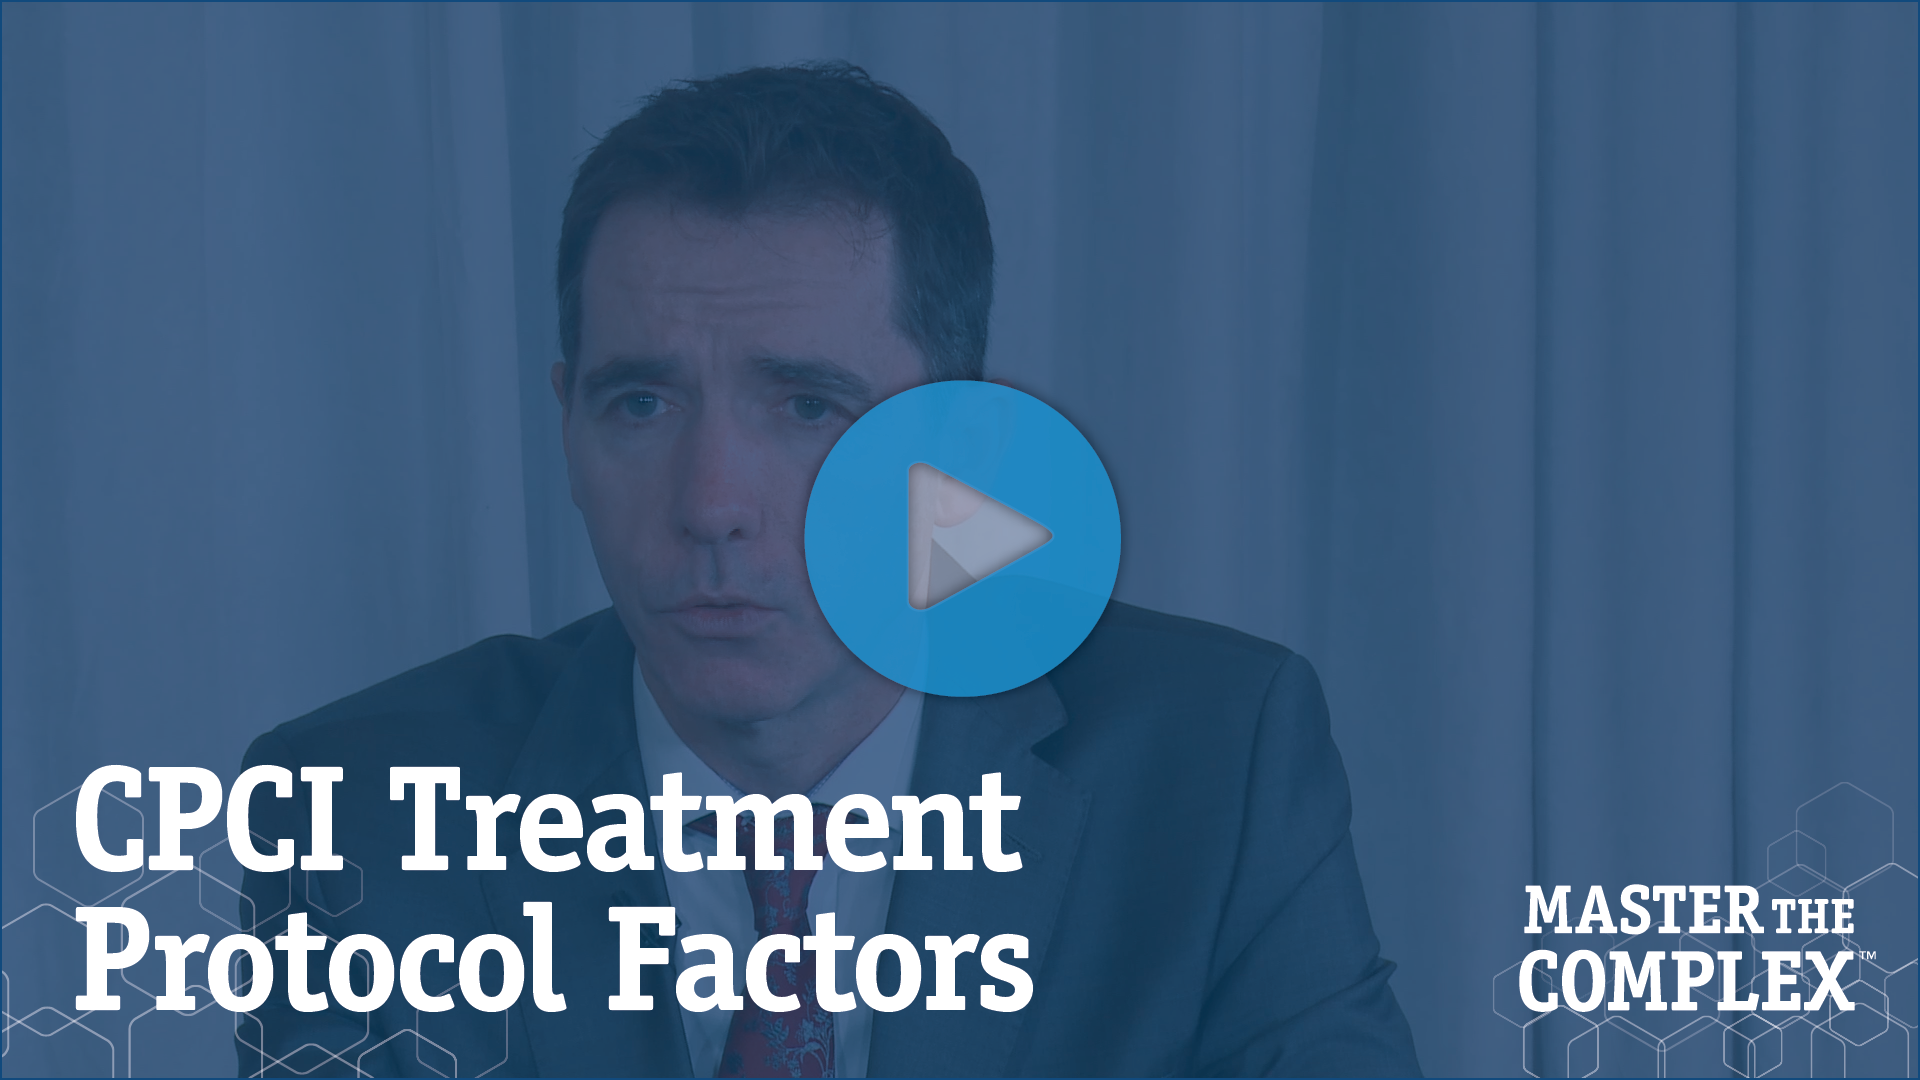 Treatment protocols for complex PCI cases look different today than they did 15 to 20 years ago. From your perspective, what contributing factors have impacted the treatment of these cases the most?